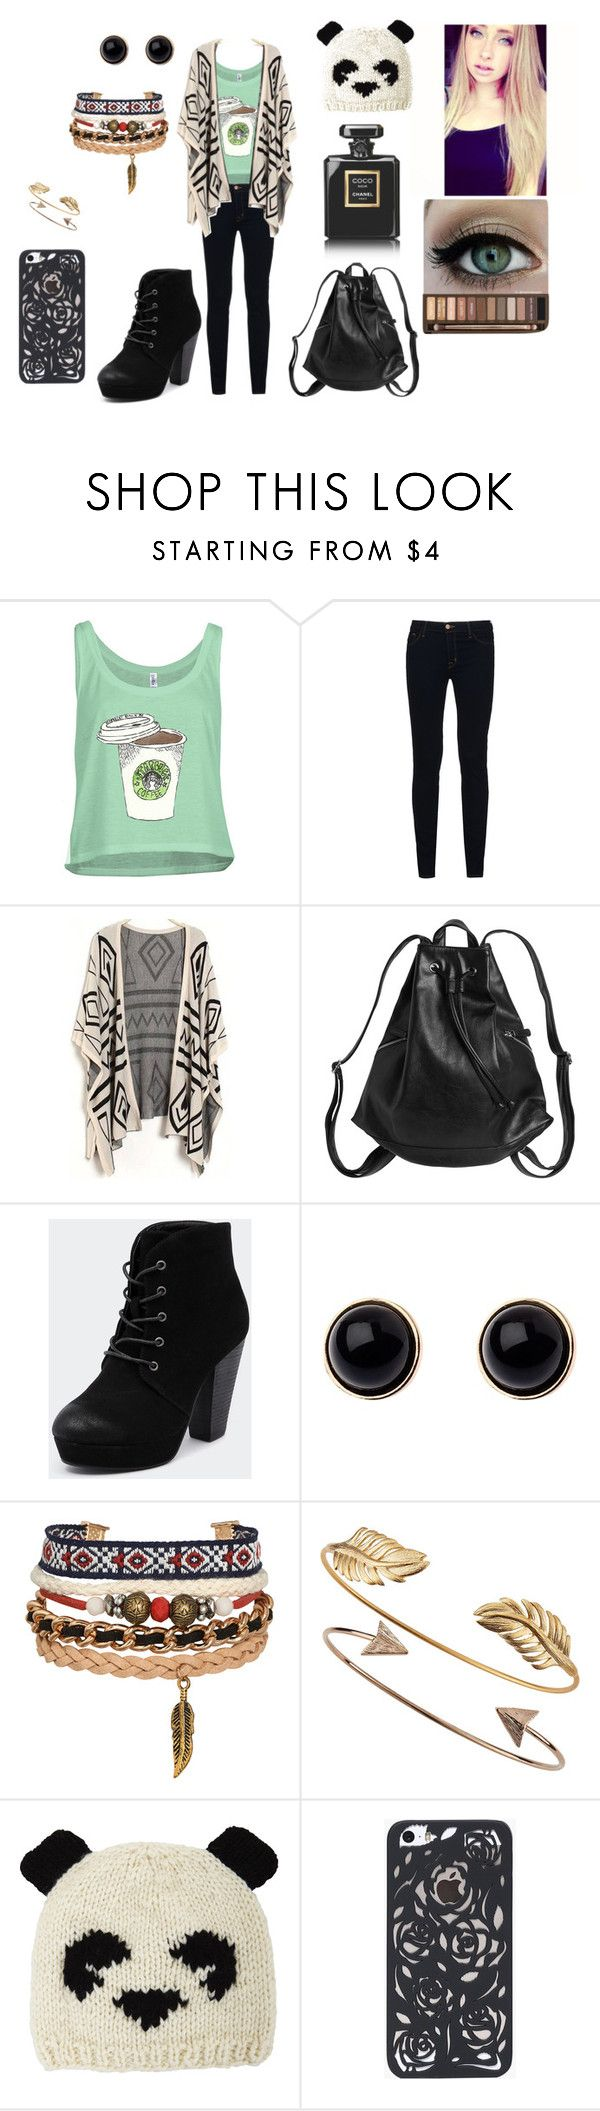 """White Girls Be Like"" by helenagonmir ❤ liked on Polyvore featuring J Brand, Monki, Therapy, Adele Marie, Tai, ADAM, BCBGMAXAZRIA and Chanel"